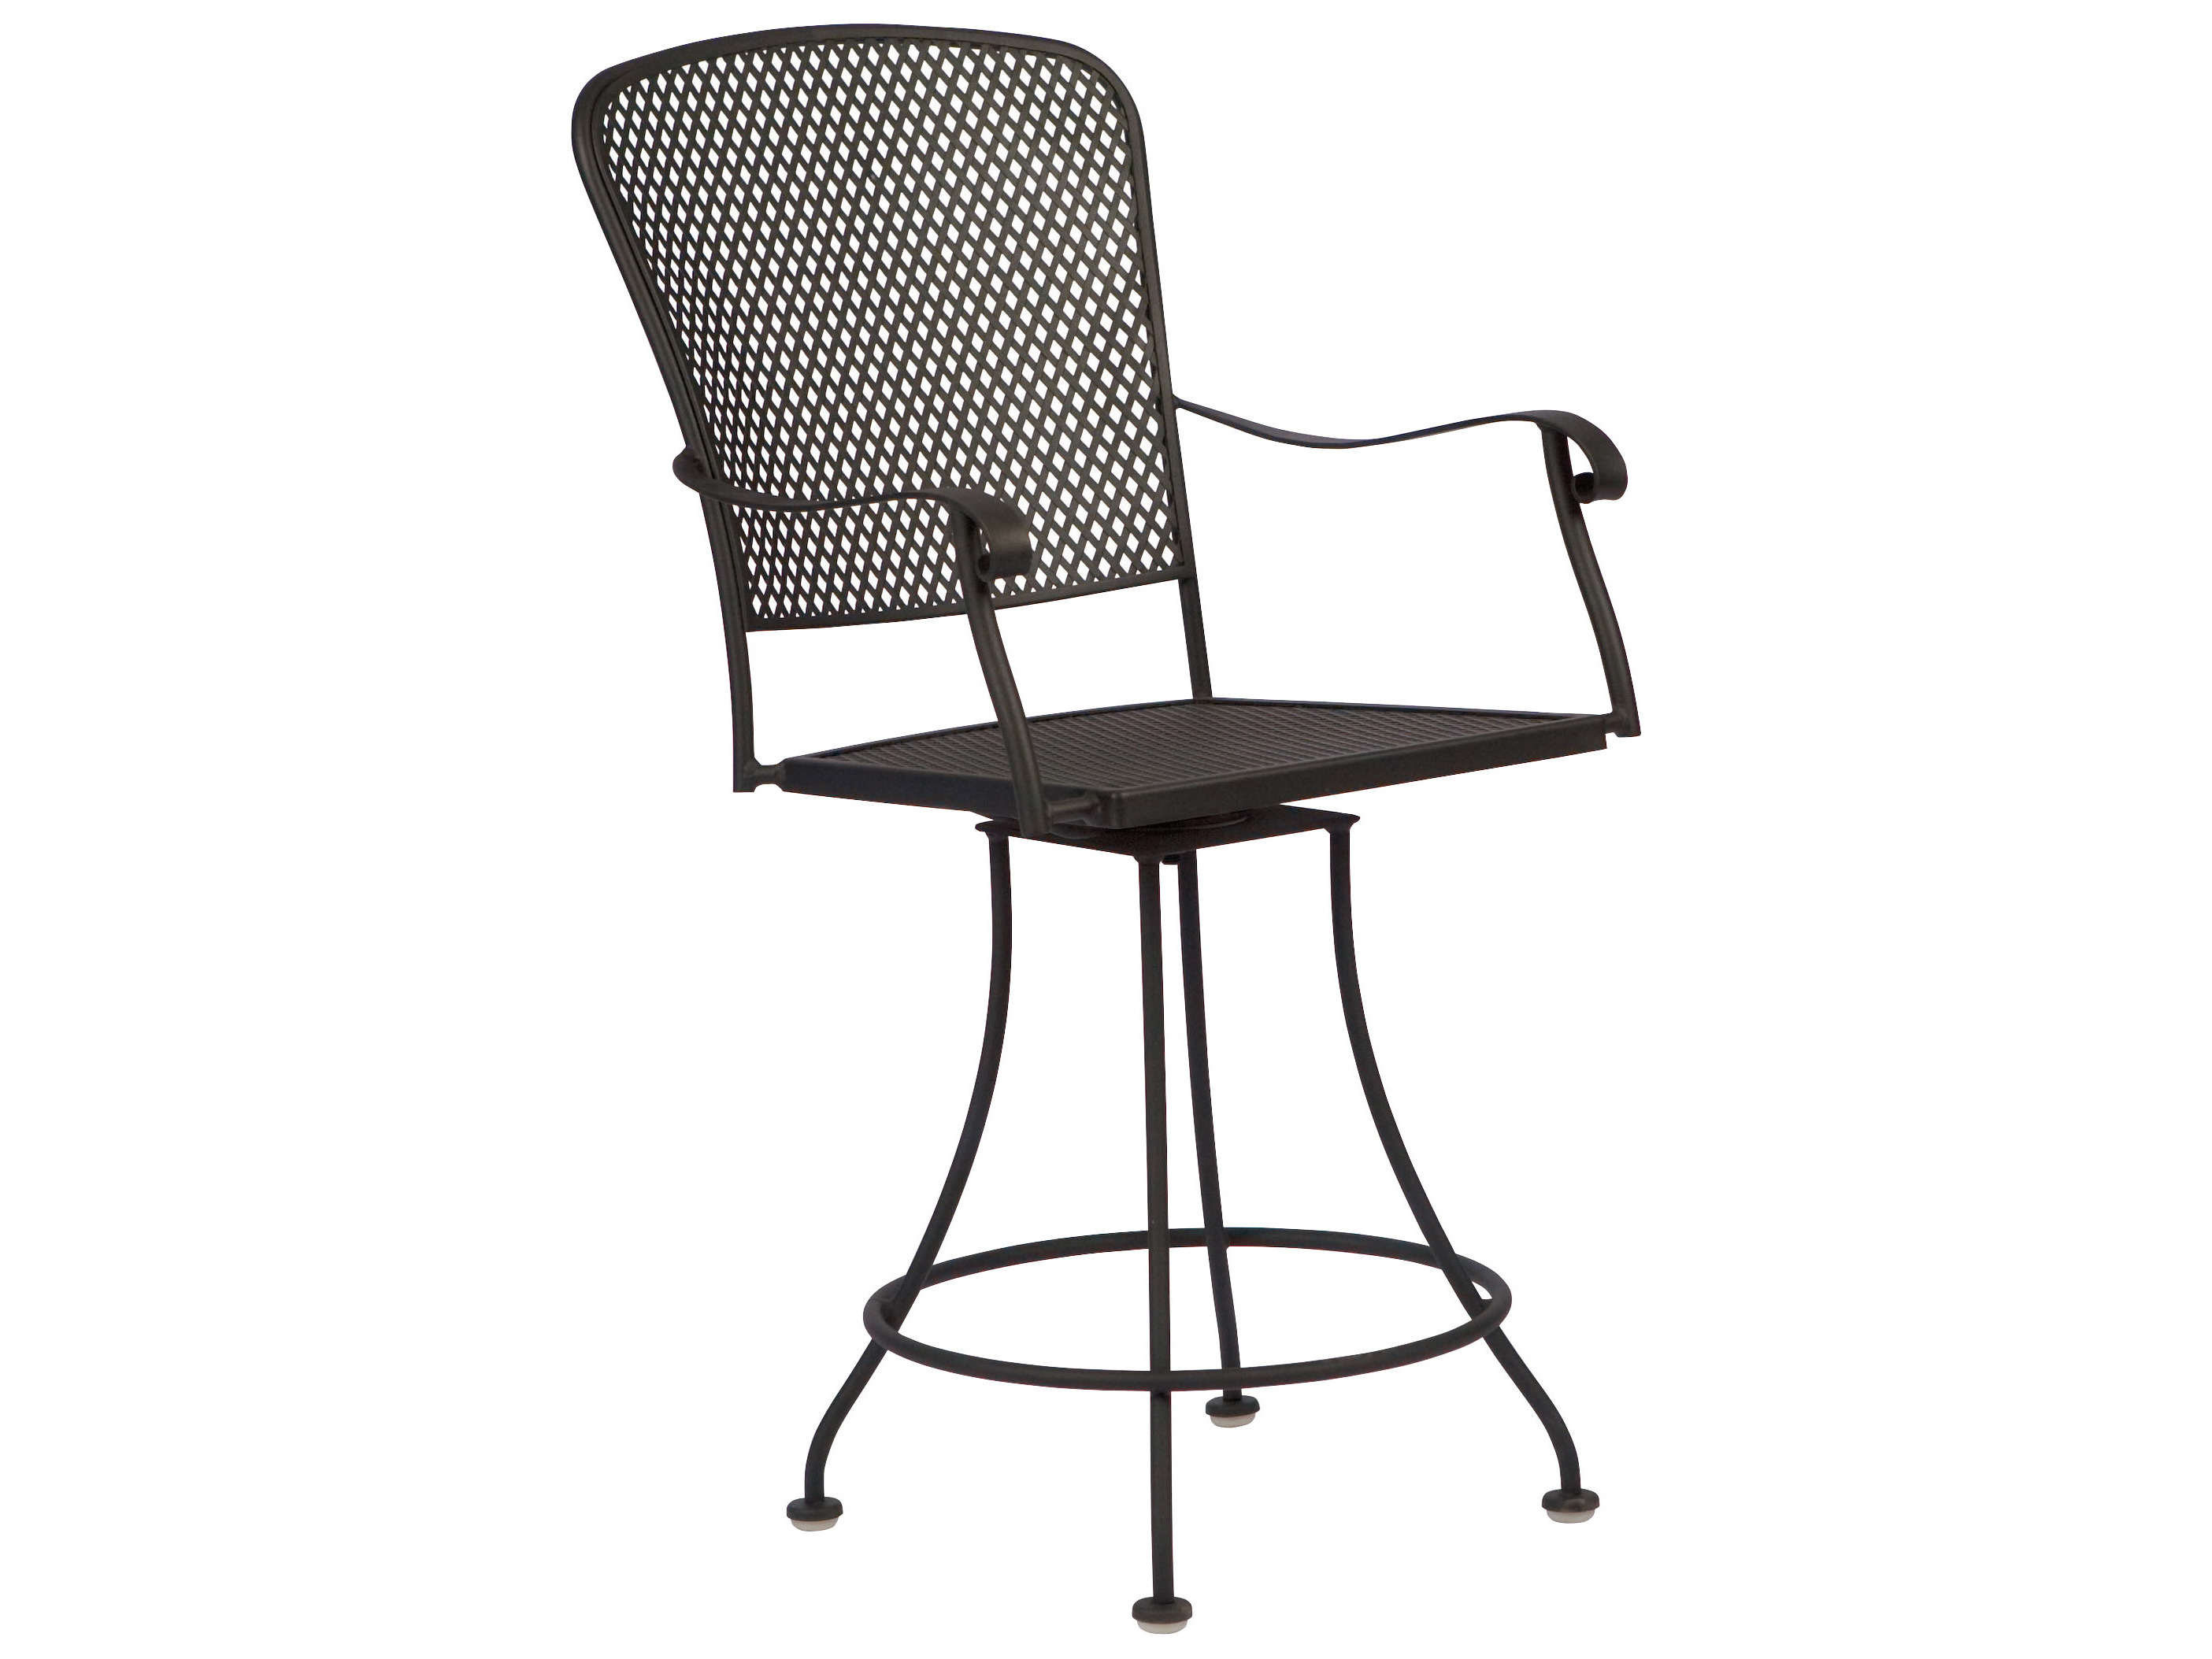 Woodard Fullerton Swivel Counter Stool Replacement  : WR2Z0069CH1zm from www.patioliving.com size 2809 x 2107 jpeg 497kB